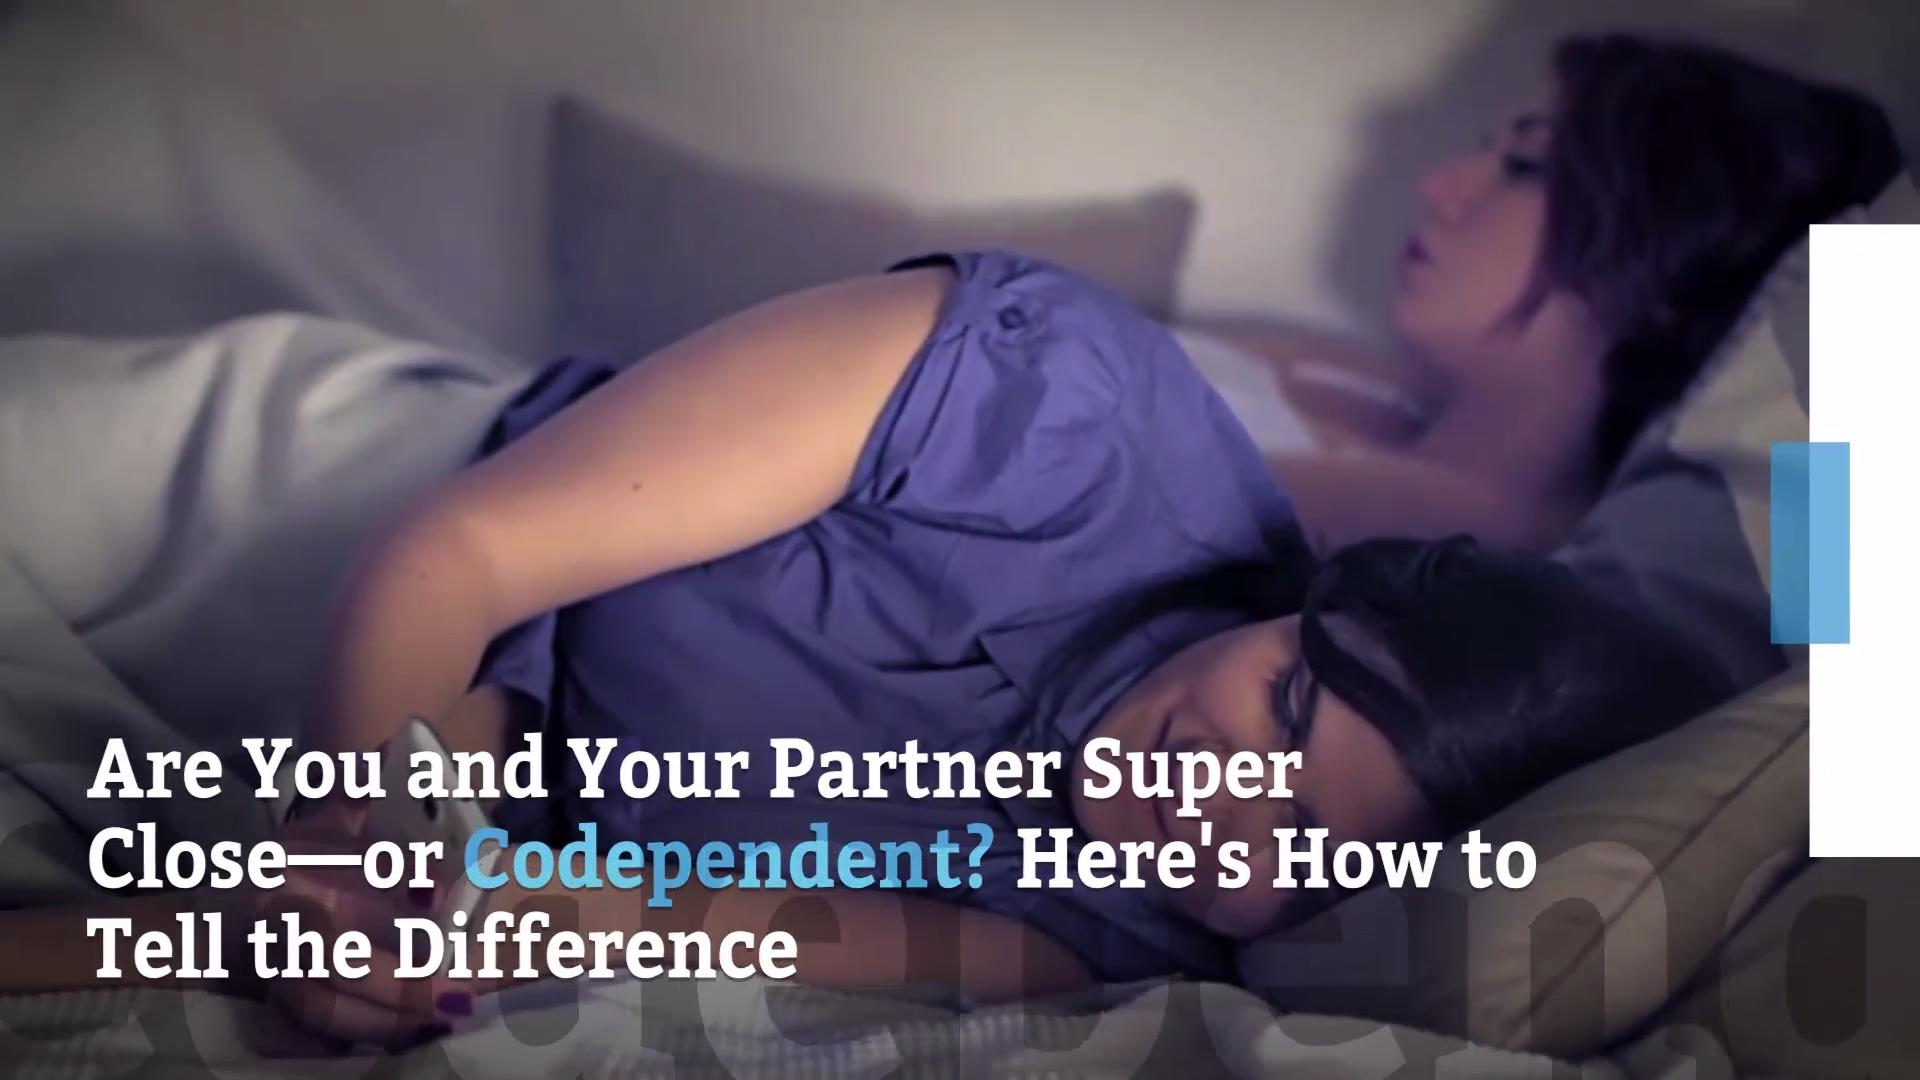 Signs you're in a codependent relationship